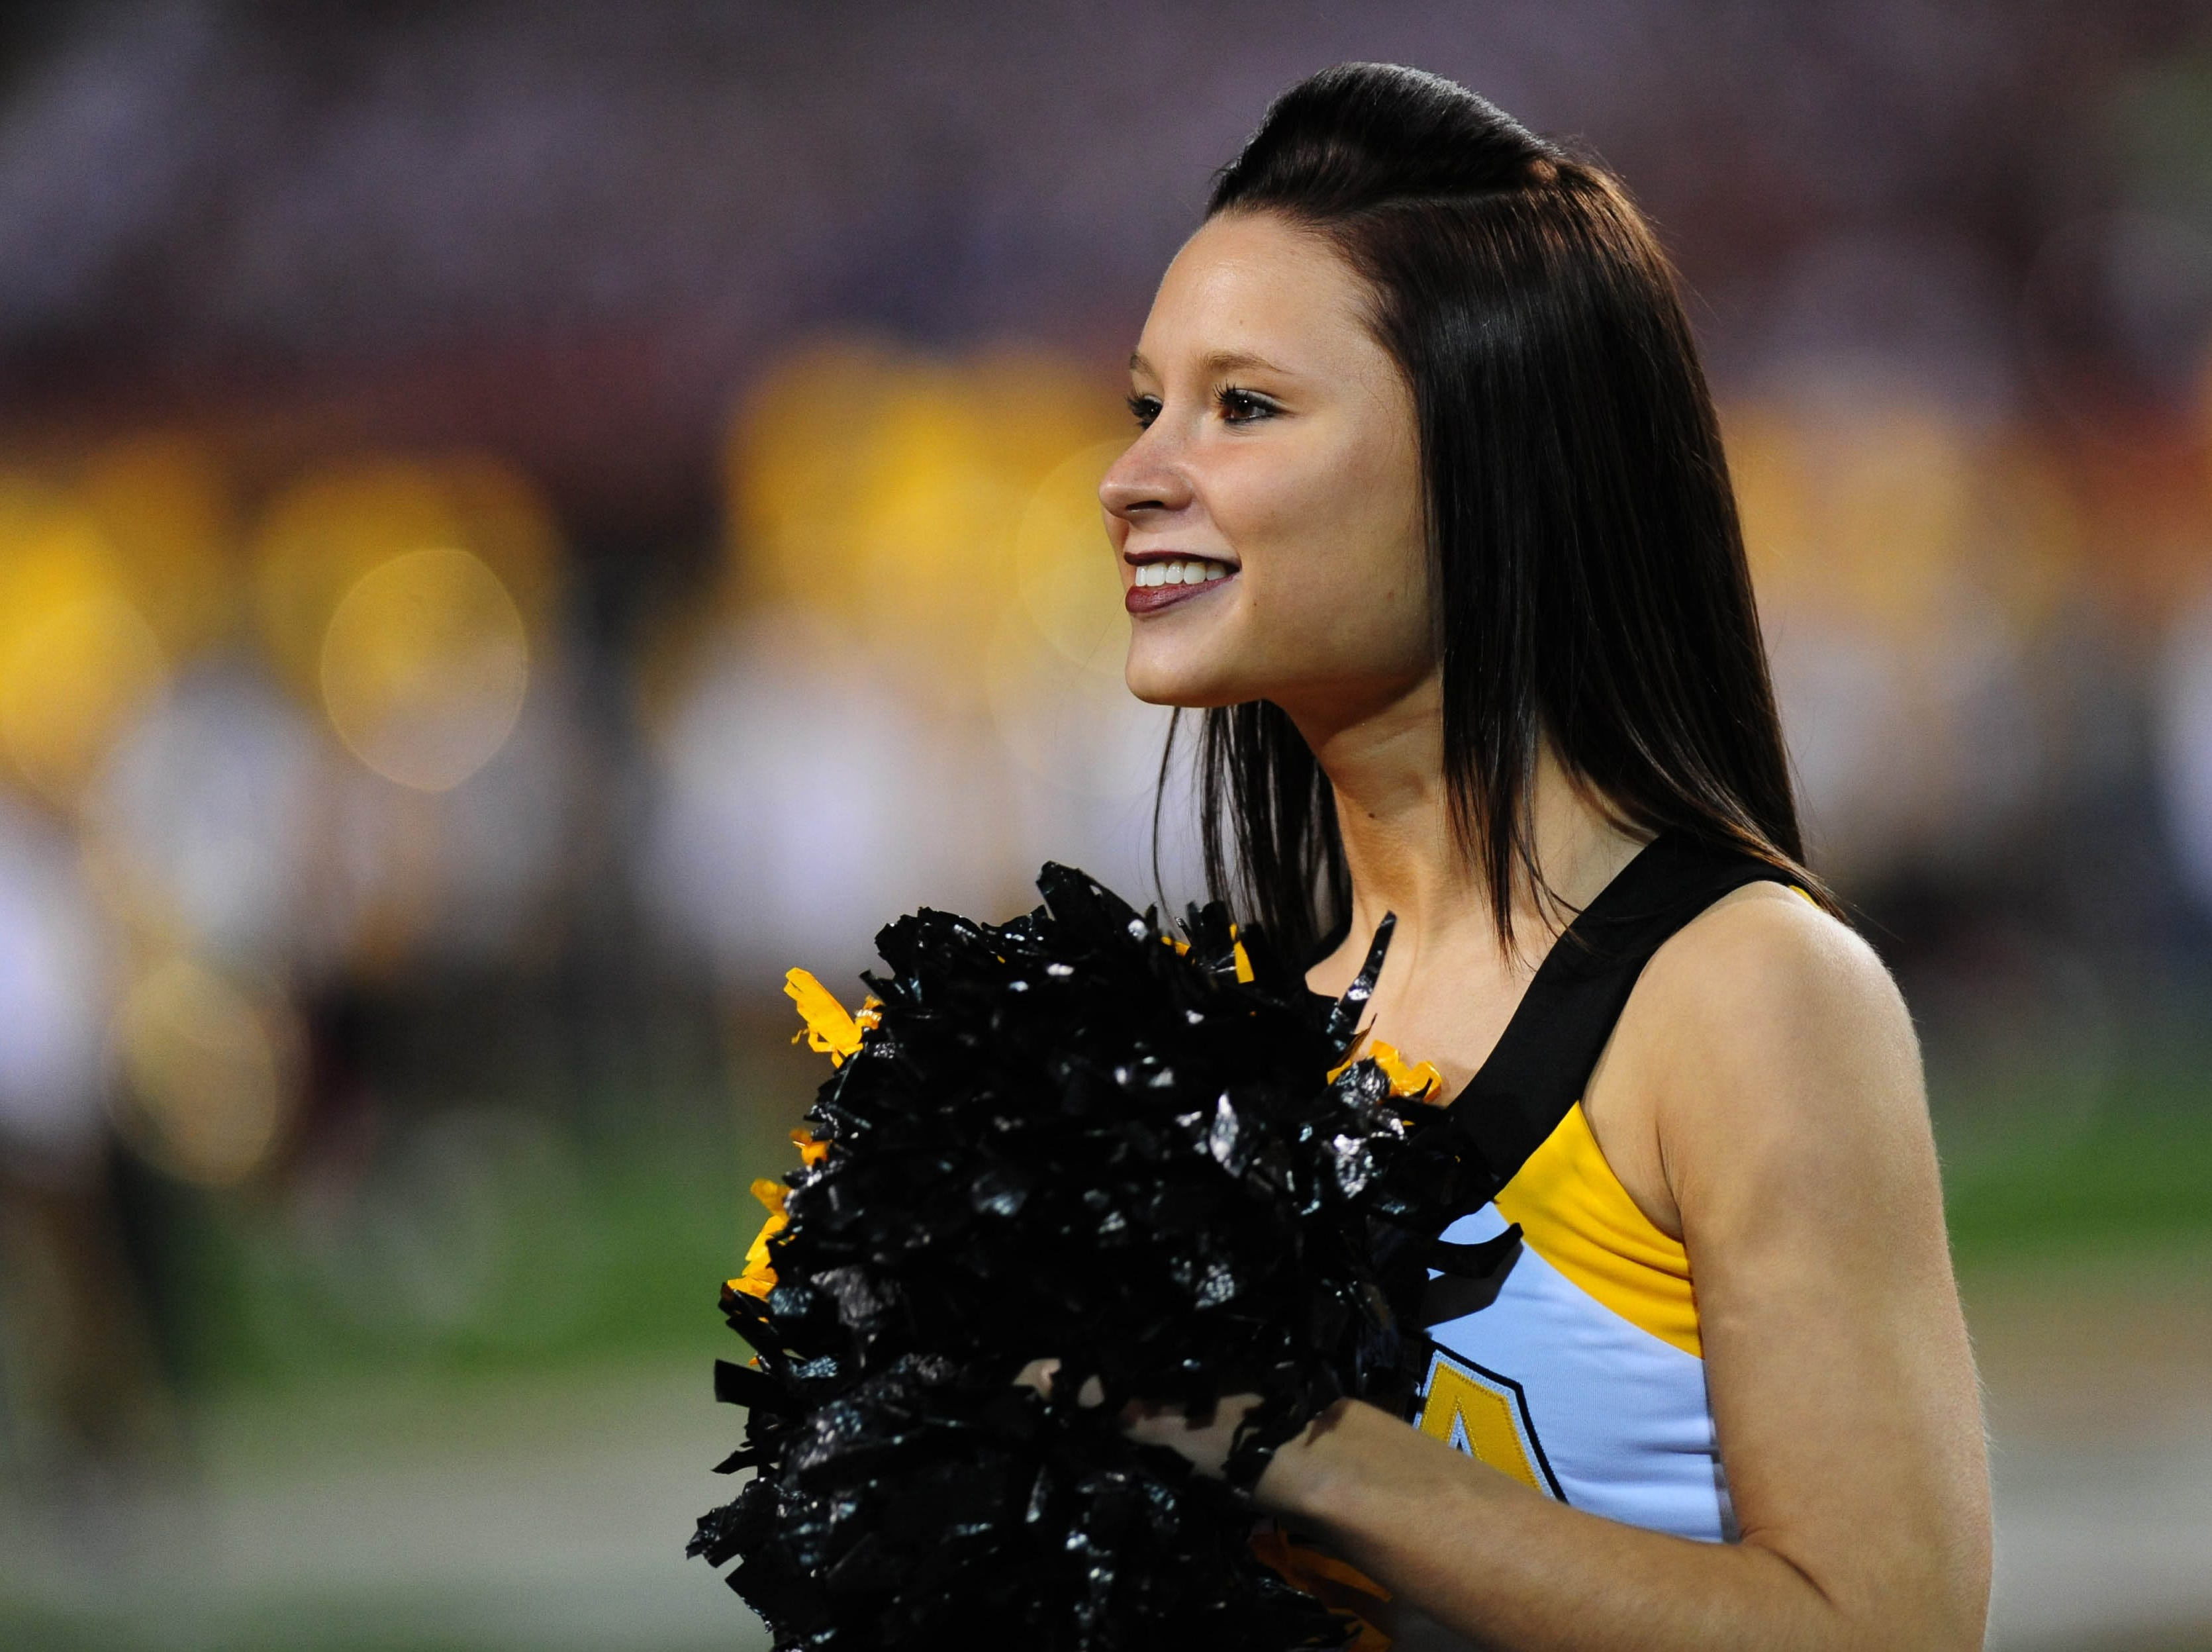 Dec 30, 2011; Tempe, AZ, USA;  Iowa Hawkeyes cheerleader before the game  against Oklahoma Sooners during the 2011 Insight Bowl at the Sun Devil Stadium. Mandatory Credit: Jennifer Hilderbrand-USA TODAY Sports